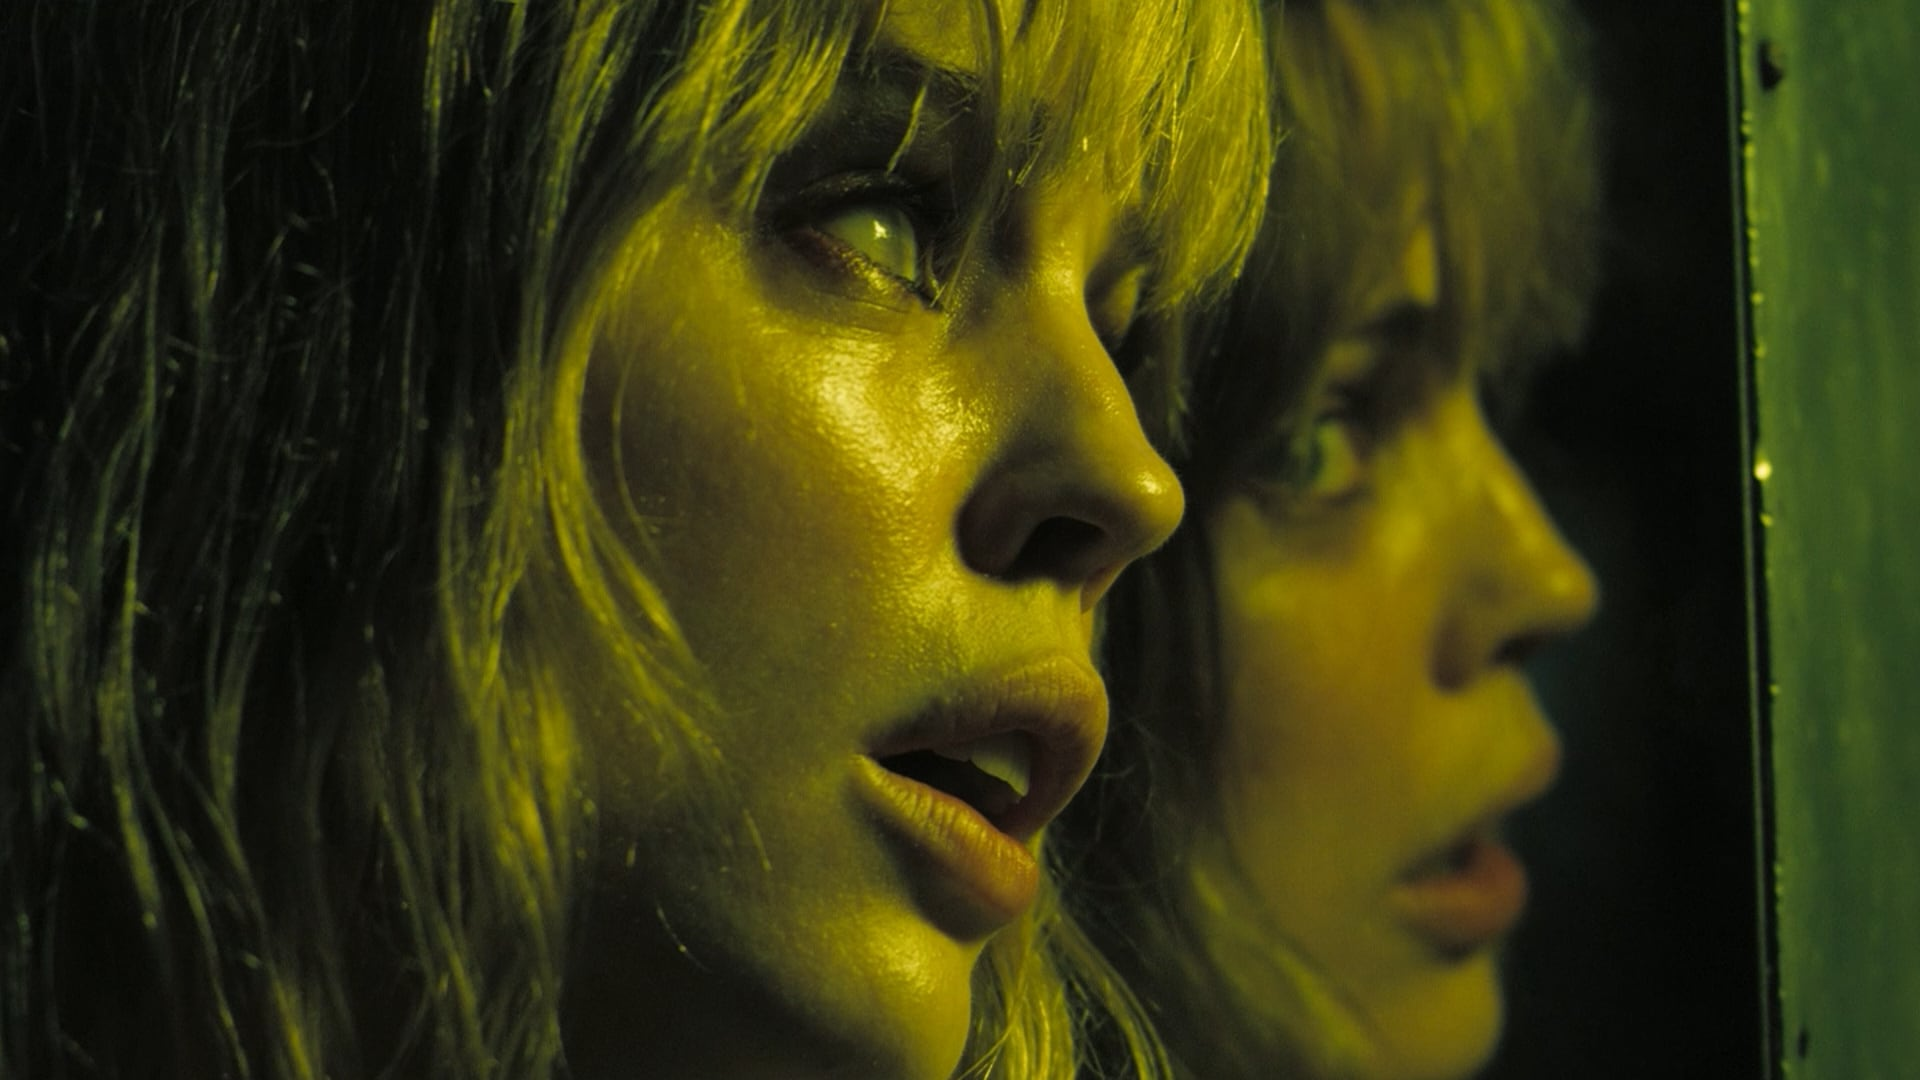 Melissa George in 2009 Triangle, a mystery thriller out of New Zealand but set in Florida.